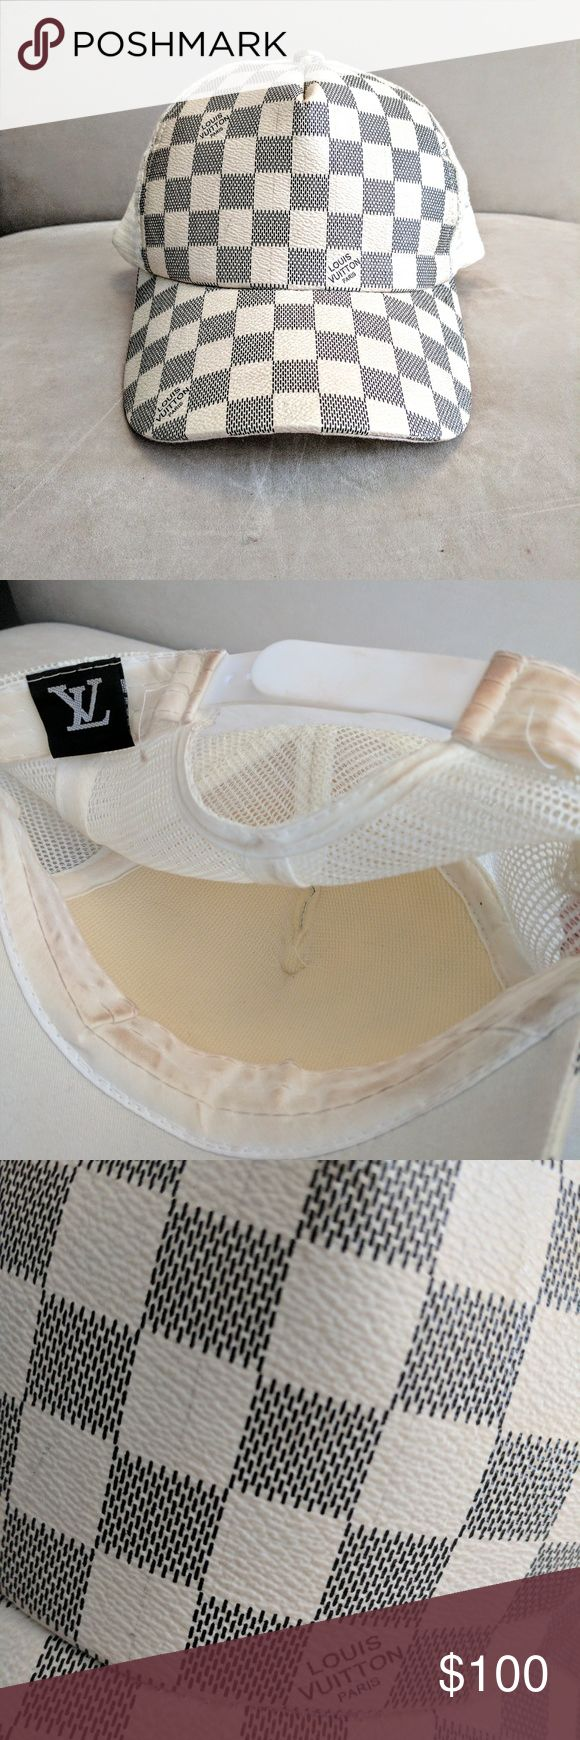 Louis Vuitton snapback Bootleg 90's monogram vernis snapback in off white/grey. Hat is in perfect condition with no stains or bends, however there is makeup on the interior band. Please note the photos -it is not noticable when wearing, don't file a claim when it is clearly stated. I did not attempt to handwash, its an easy fix. Because of the nature of the hat being white, it was almost unavoidable, and doesn't make the hat any less amazing - got a ton of compliments! Unisex one size…